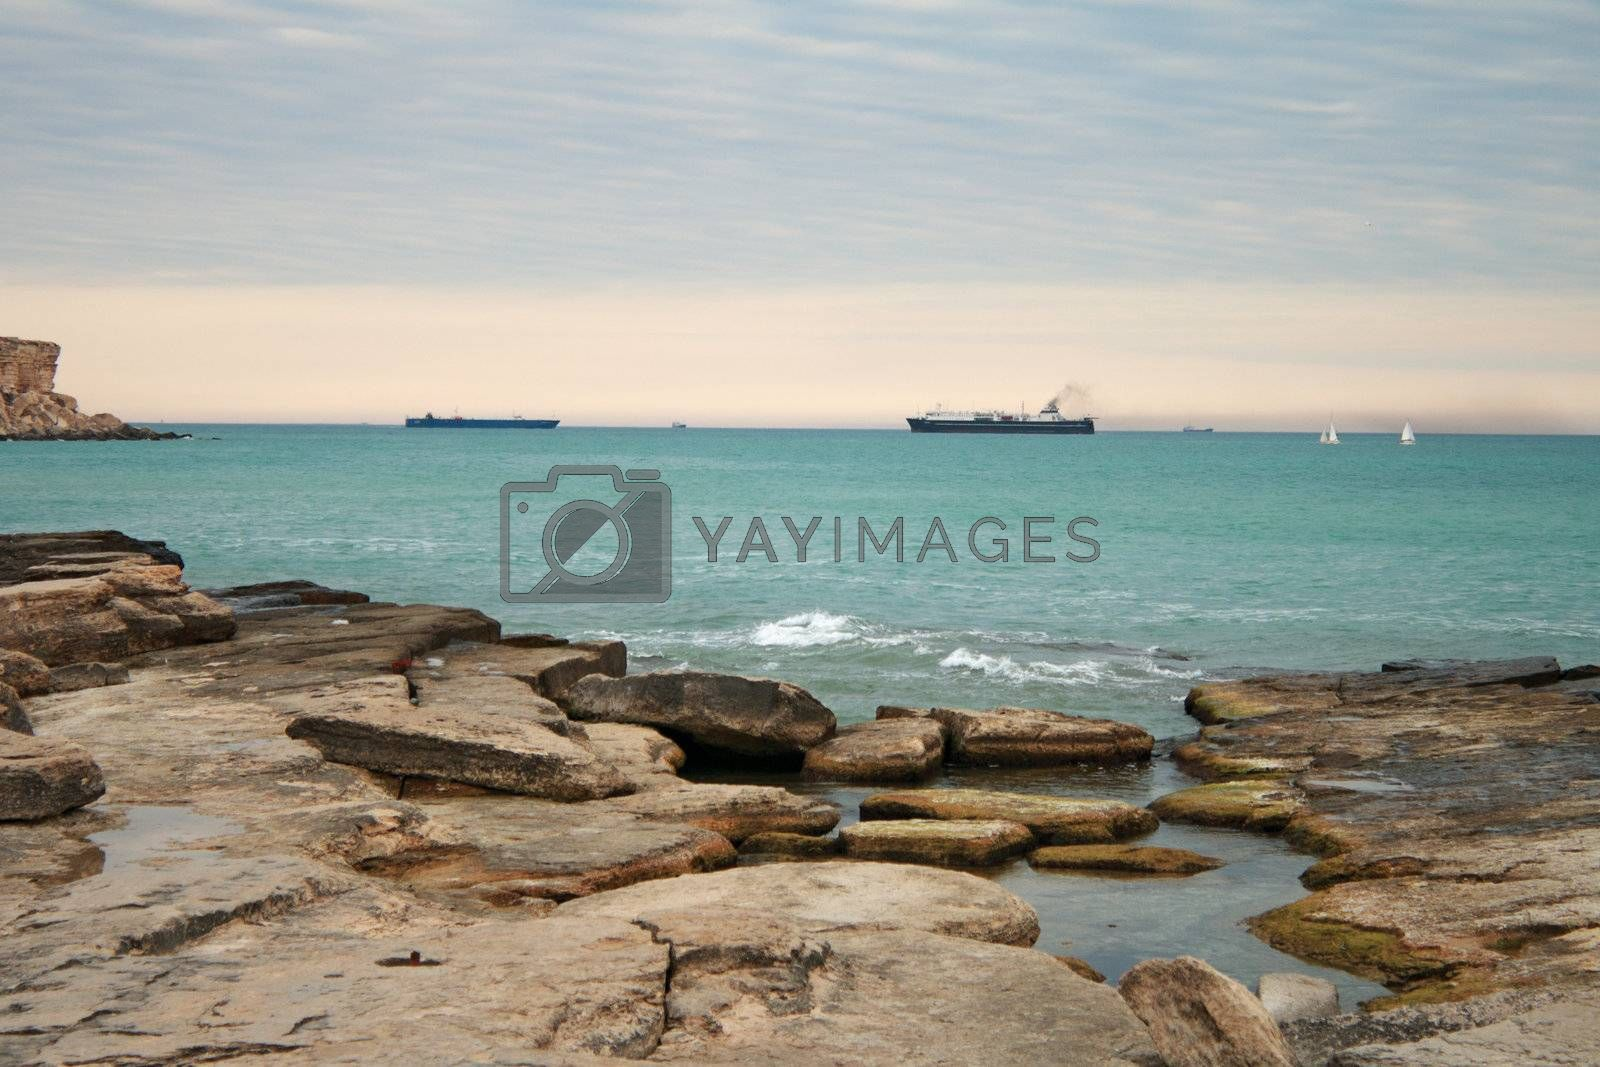 View of the sea on the horizon, the Baku ferry enters the port of Aktau.